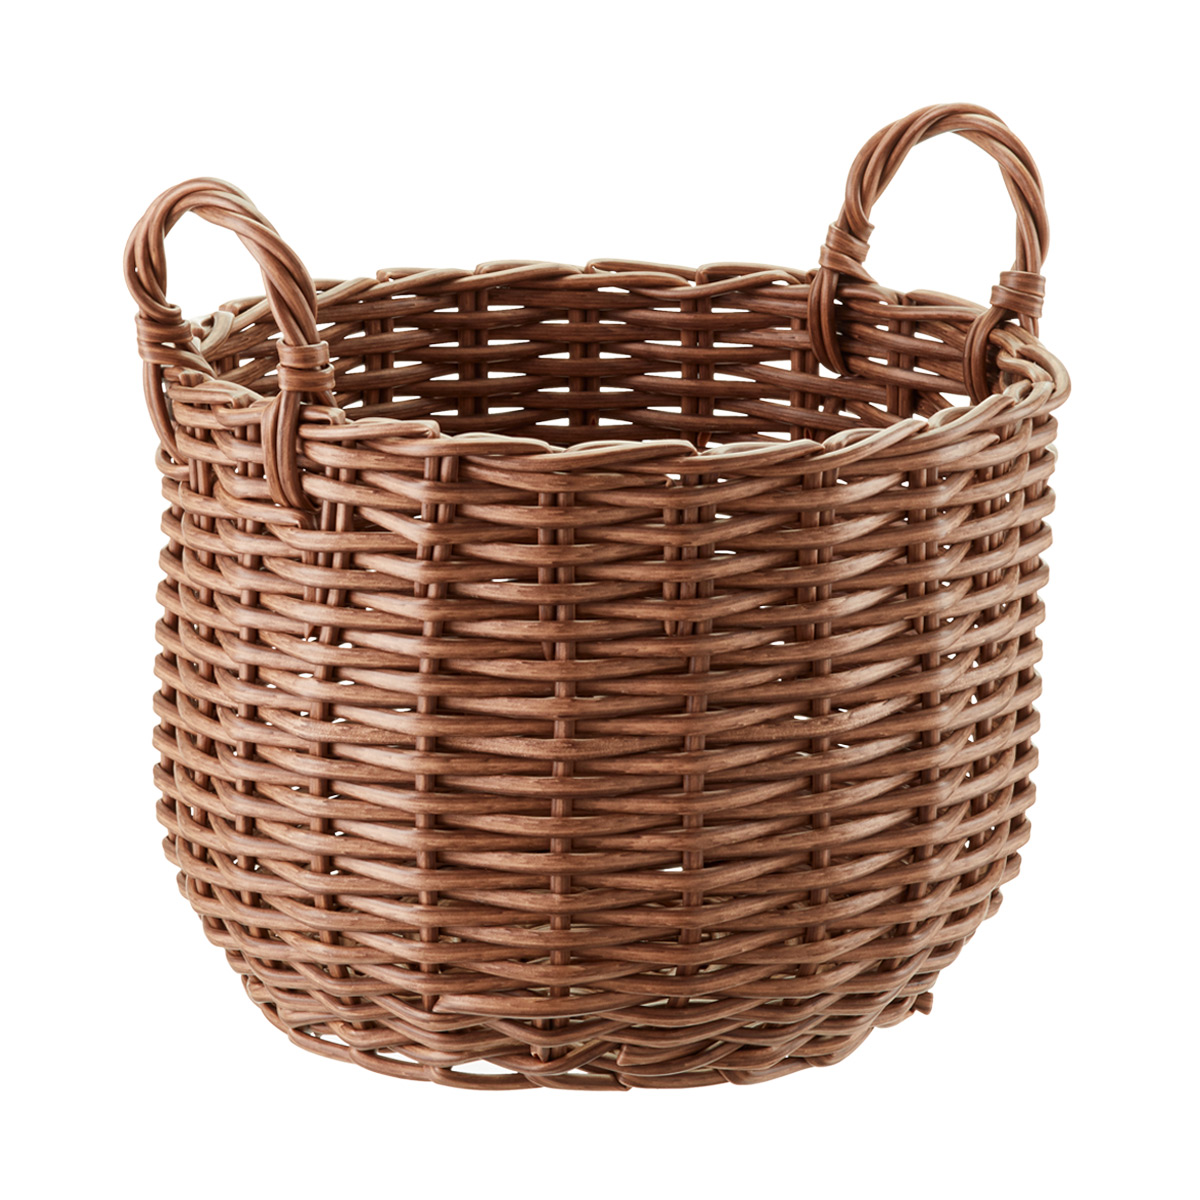 wicker baskets round plastic wicker storage bin with handles ZTSROXJ